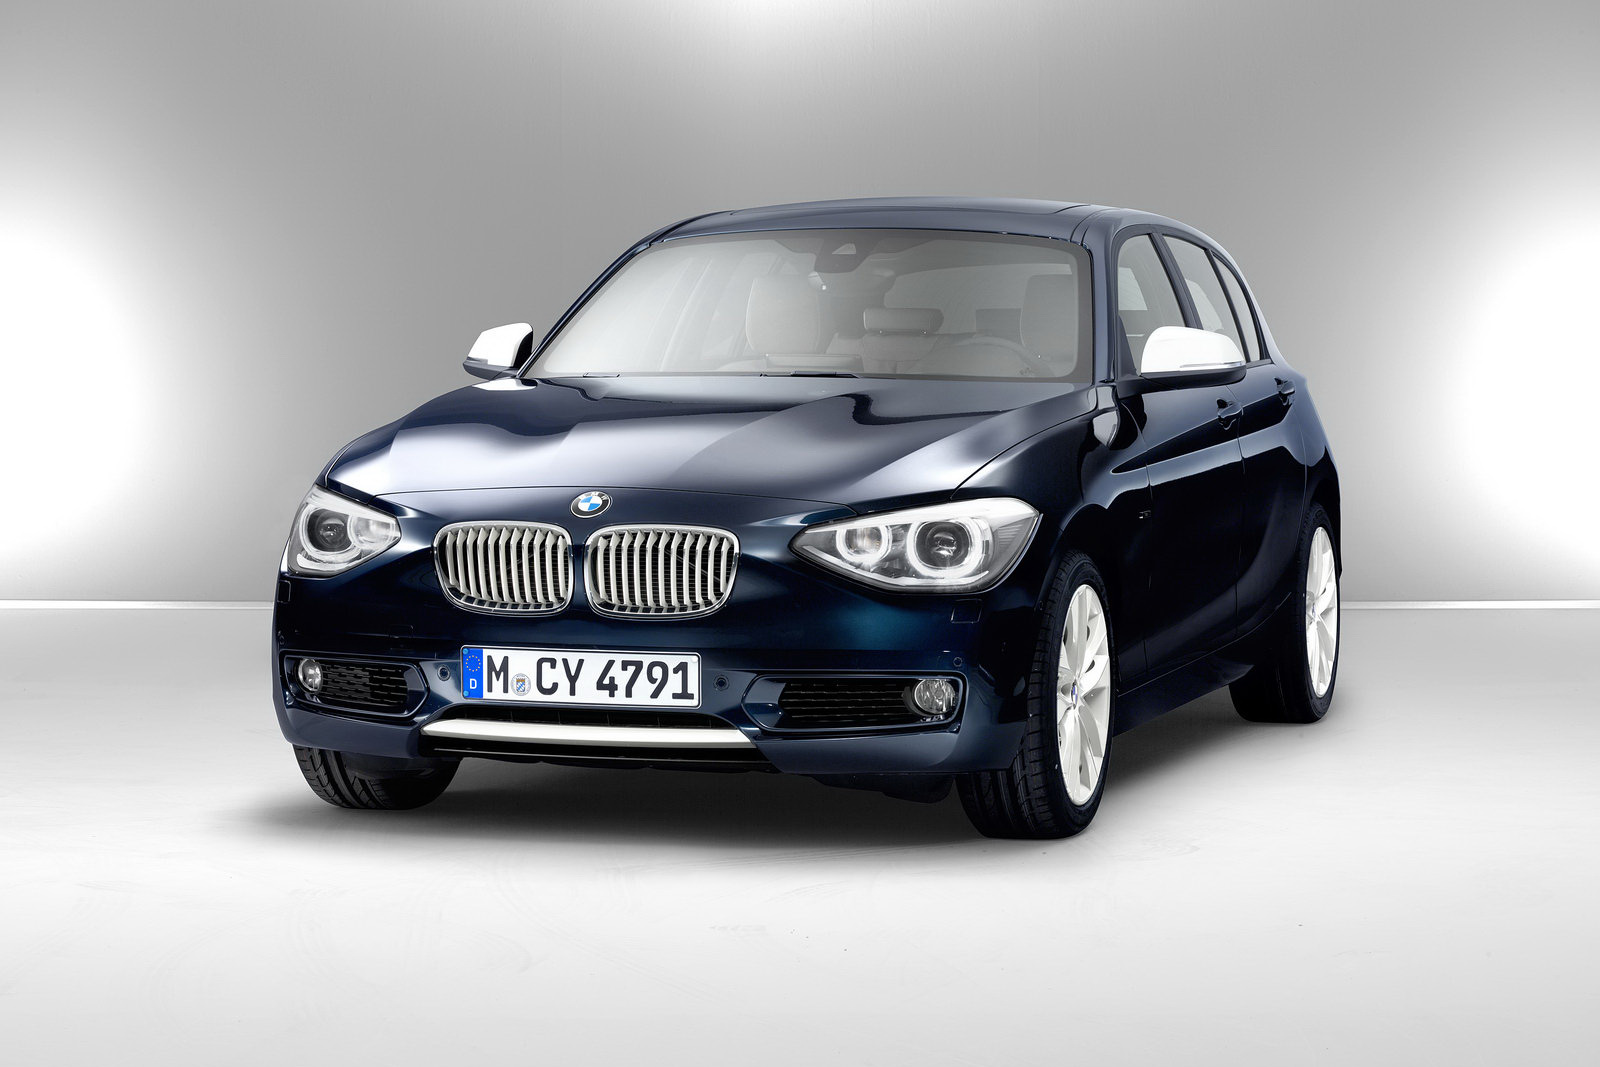 99 wallpapers 2012 bmw 1 series offical releases the detailspecfication s and photos. Black Bedroom Furniture Sets. Home Design Ideas